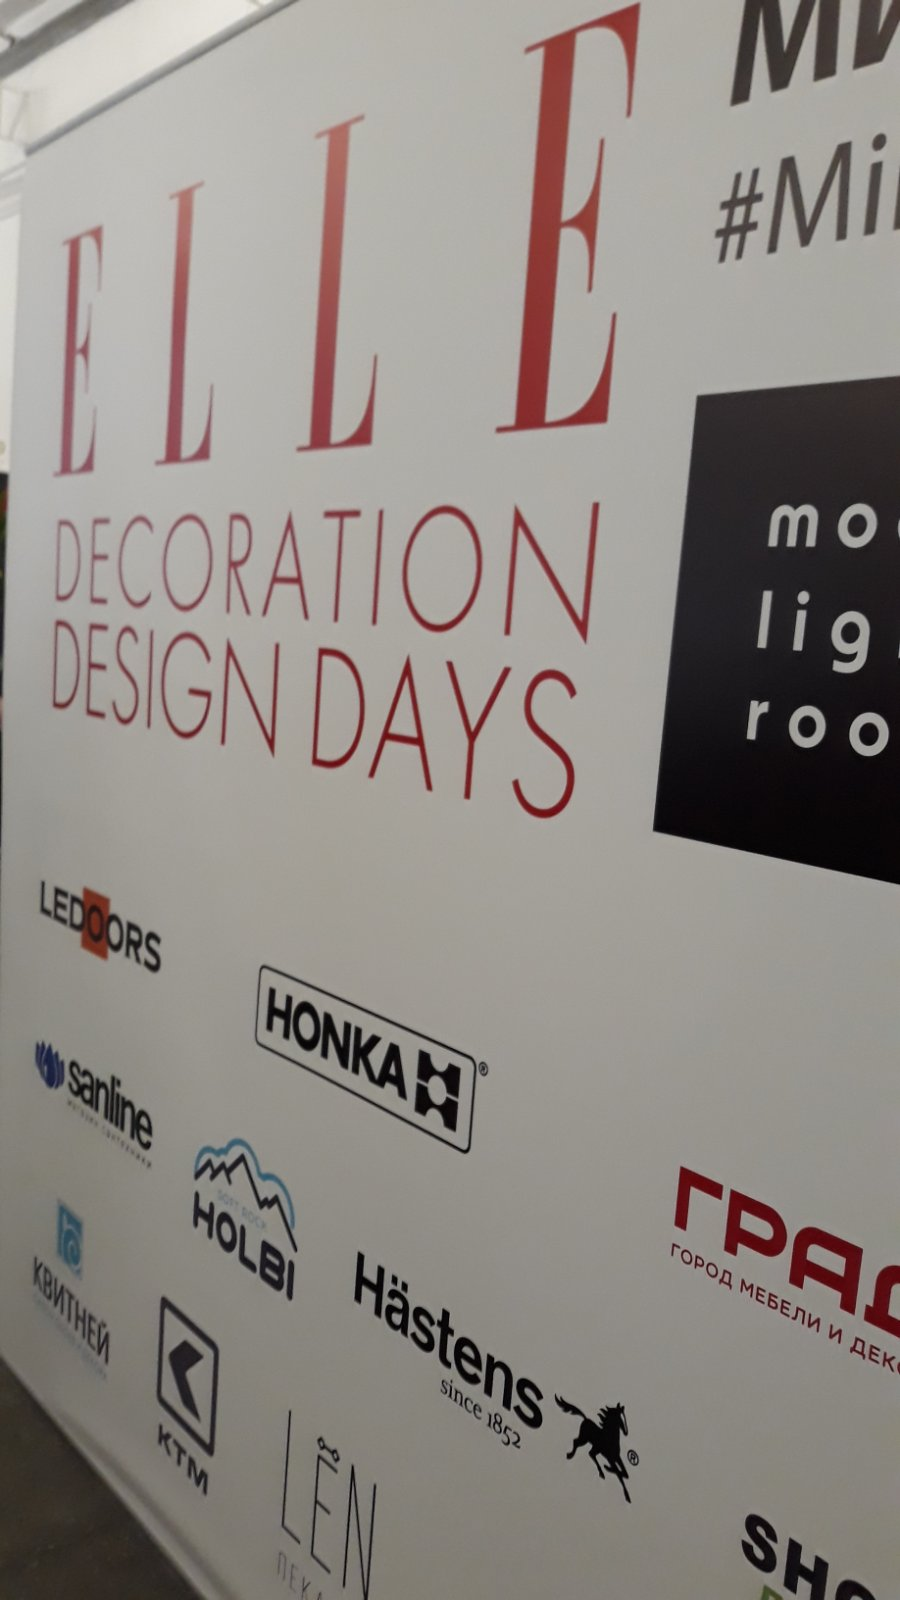 Elle Decoration Design Days в Минске